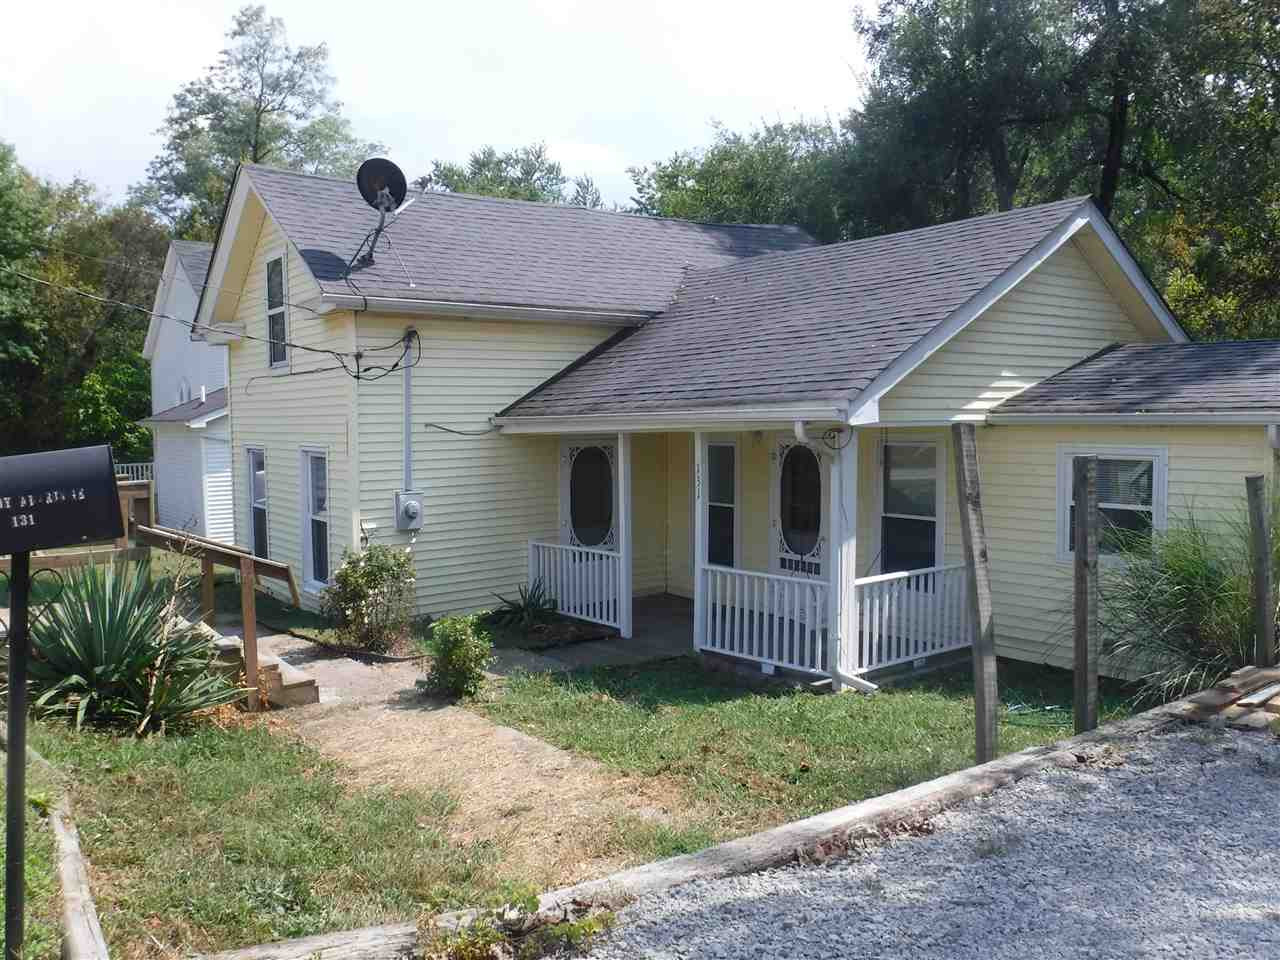 Photo 1 for 131 E Seminary St Owenton, KY 40359